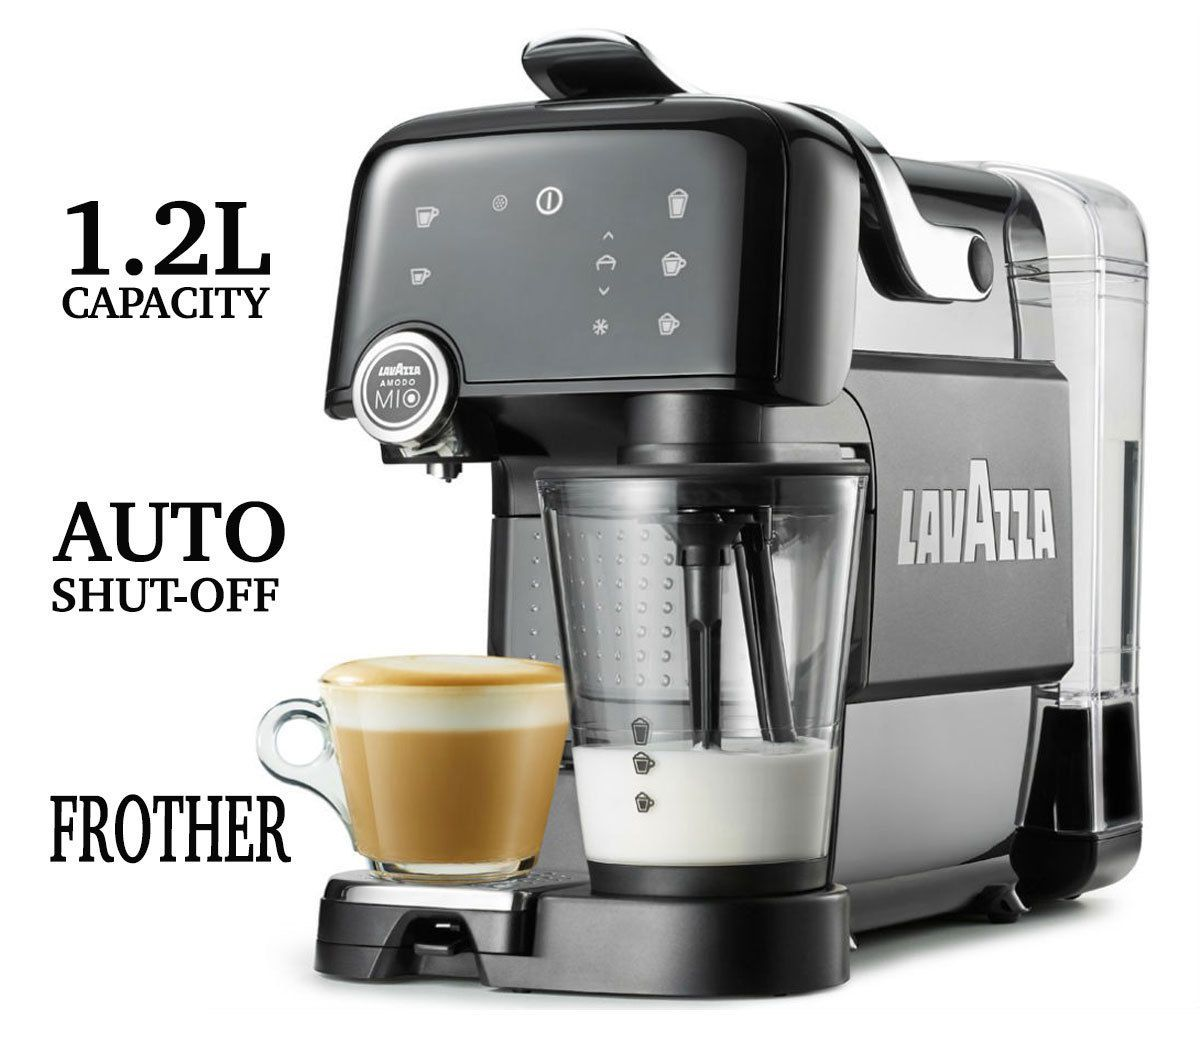 Good Aeg Lavazza A Modo Mio Fantasia #lm7000 #cappuccino #latte Coffee Machine  New, Good Looking